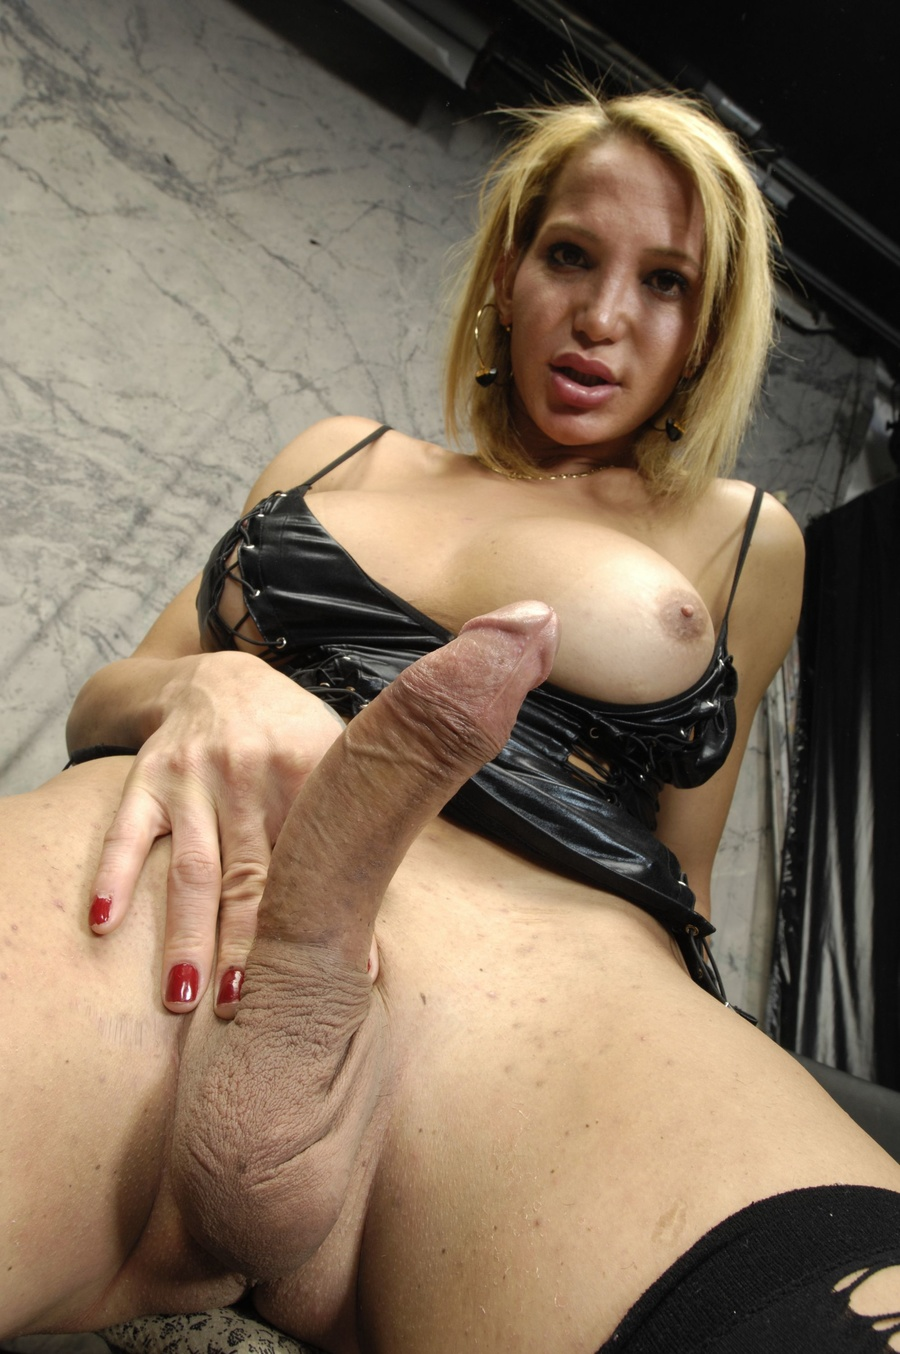 Uk london milf toys and gapes for your comments